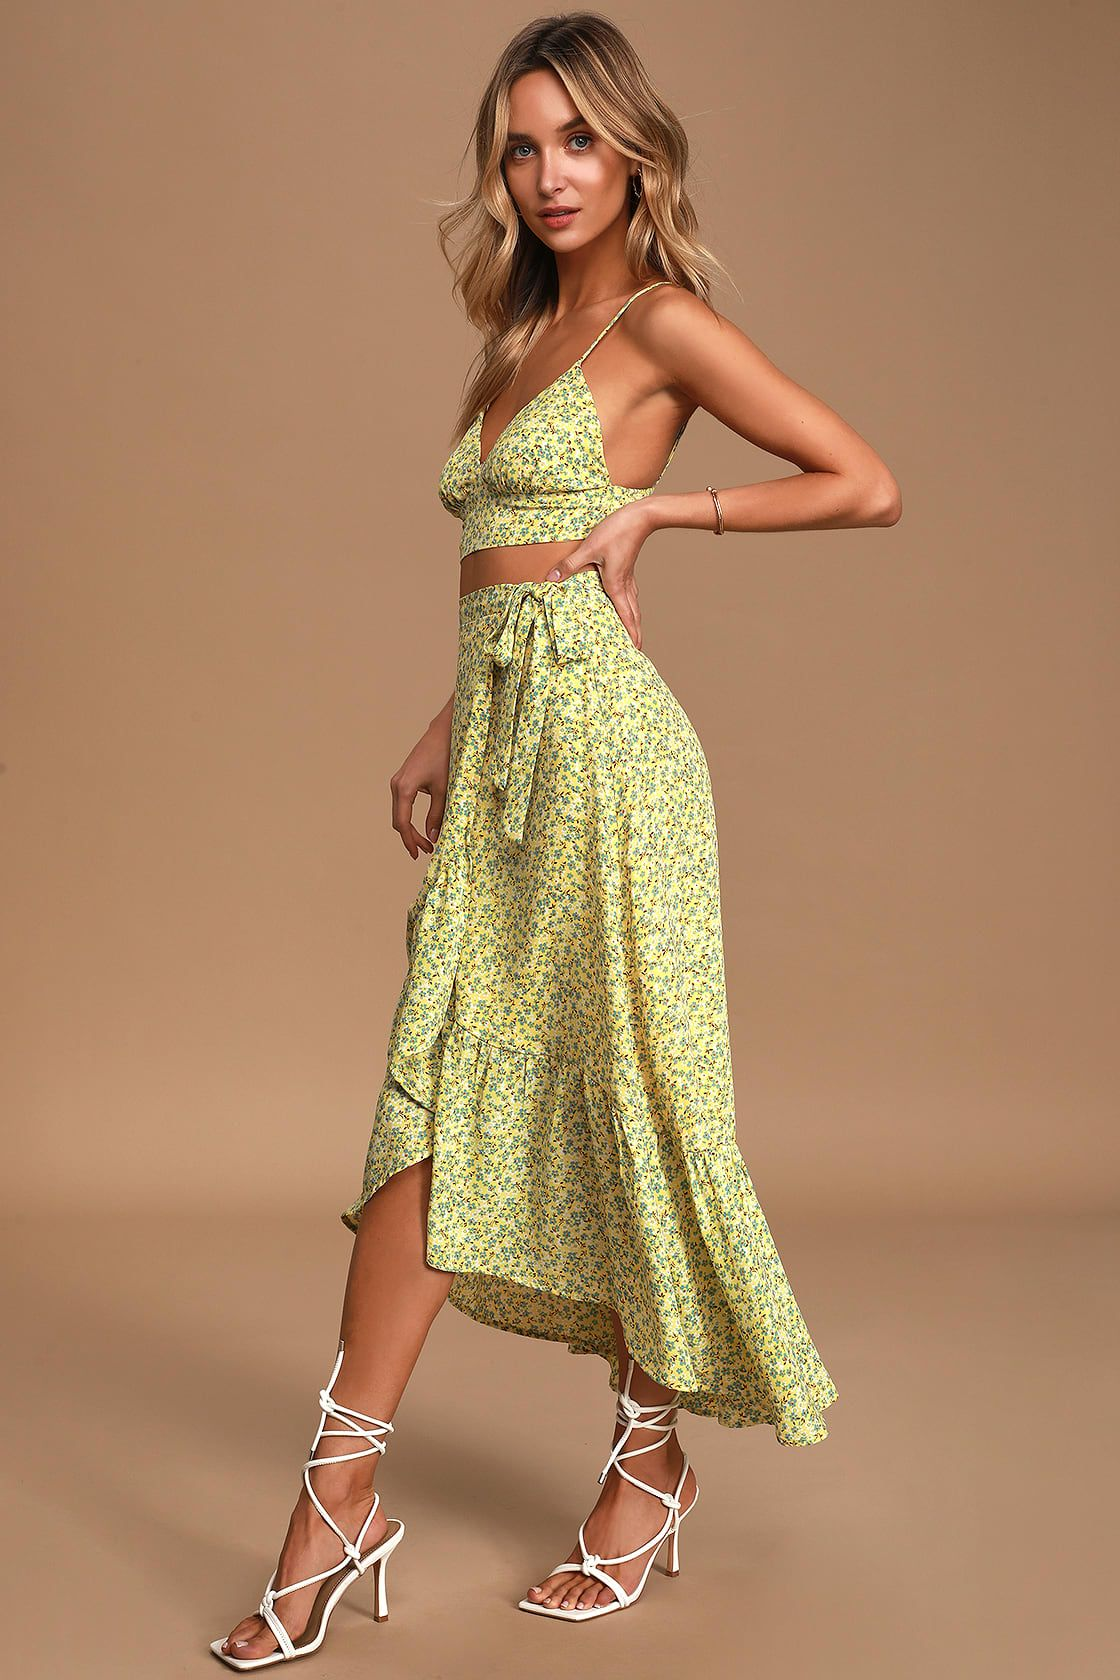 Believe In Me Yellow Floral Print Two Piece Midi Dress Floral Dress Summer Dresses Piece Dress [ 1680 x 1120 Pixel ]